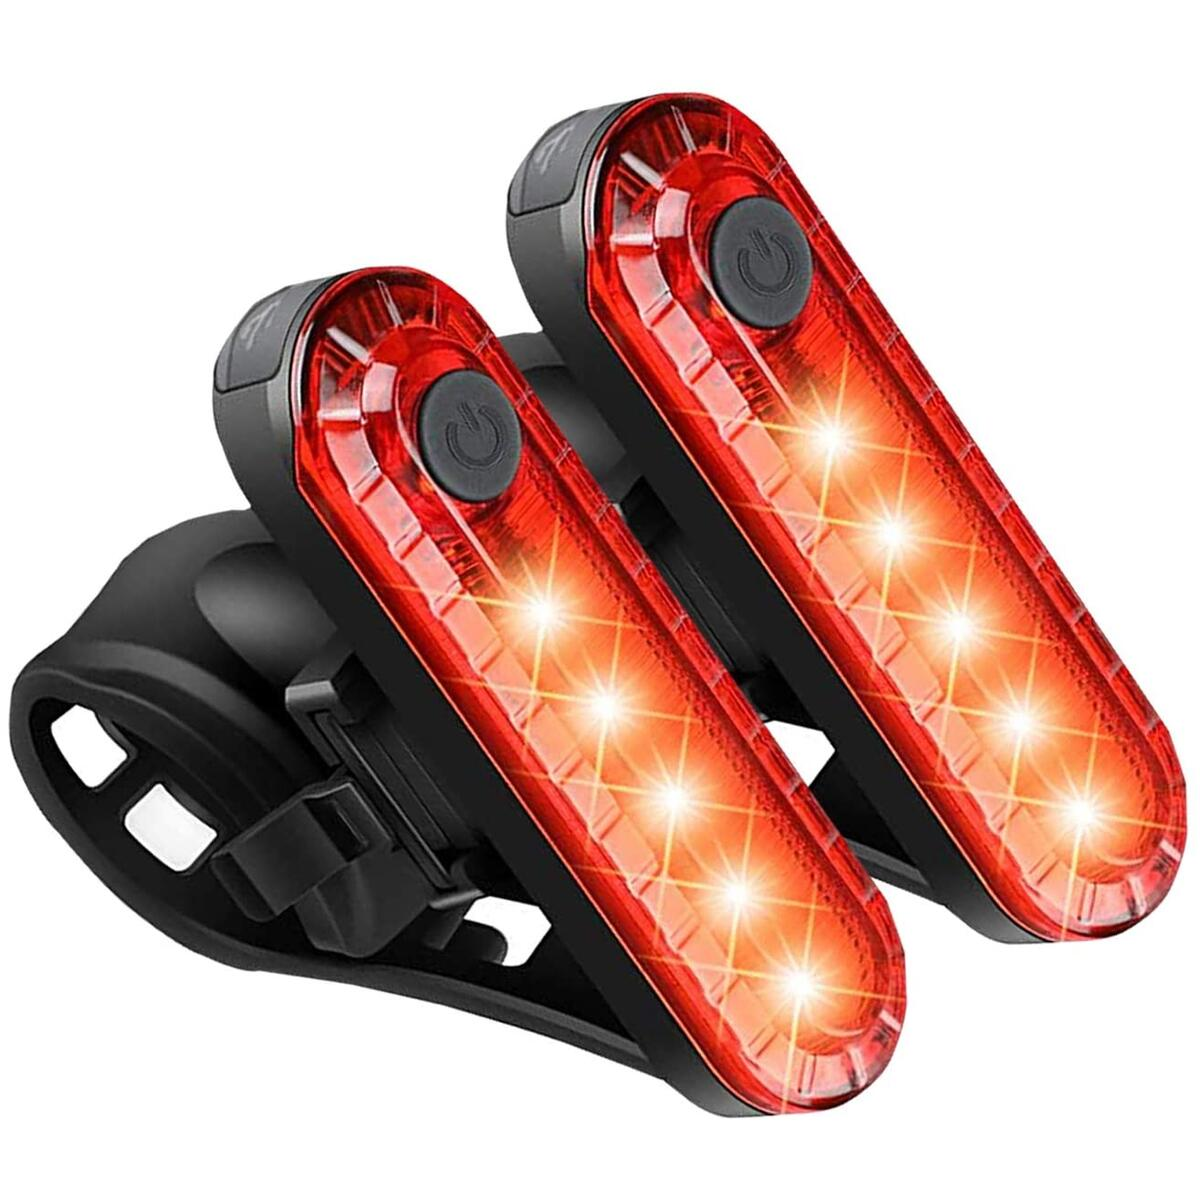 Apremont Ultra Bright USB Rechargeable Led Red Rear Bicycle Tail Light - 2 Set taillights for Night Riding - Safety Flashlight for Bike, Mountain Cycling - Mount on Road Helmet & Scooter